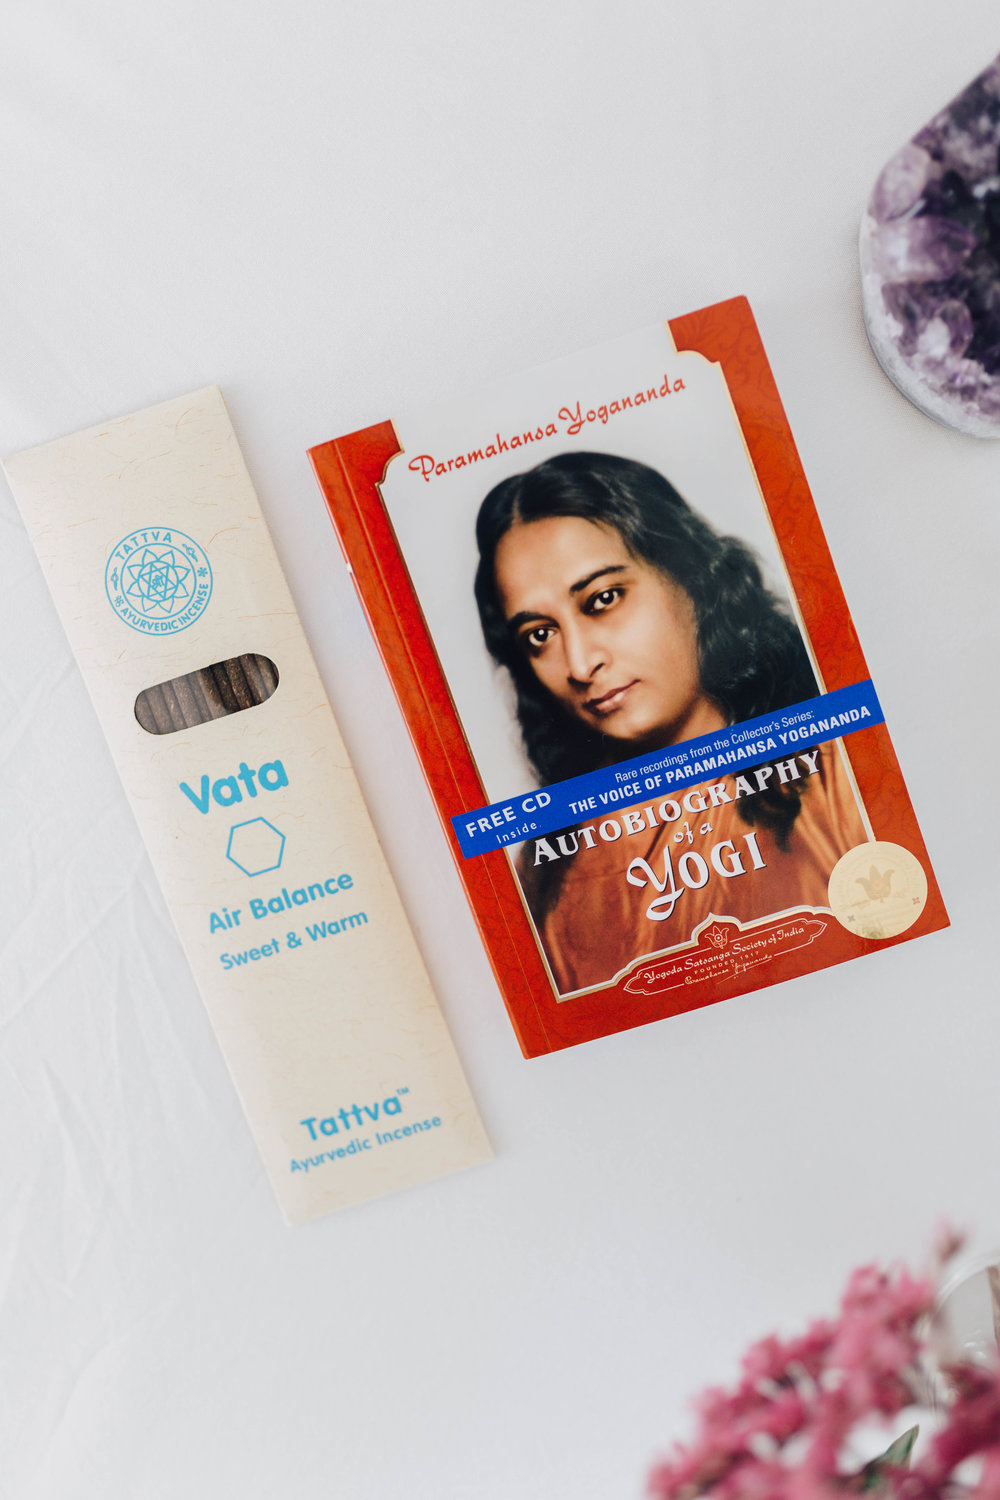 --- $25 gift ---- + ''Autobiography of a Yogi' book + Vata incense